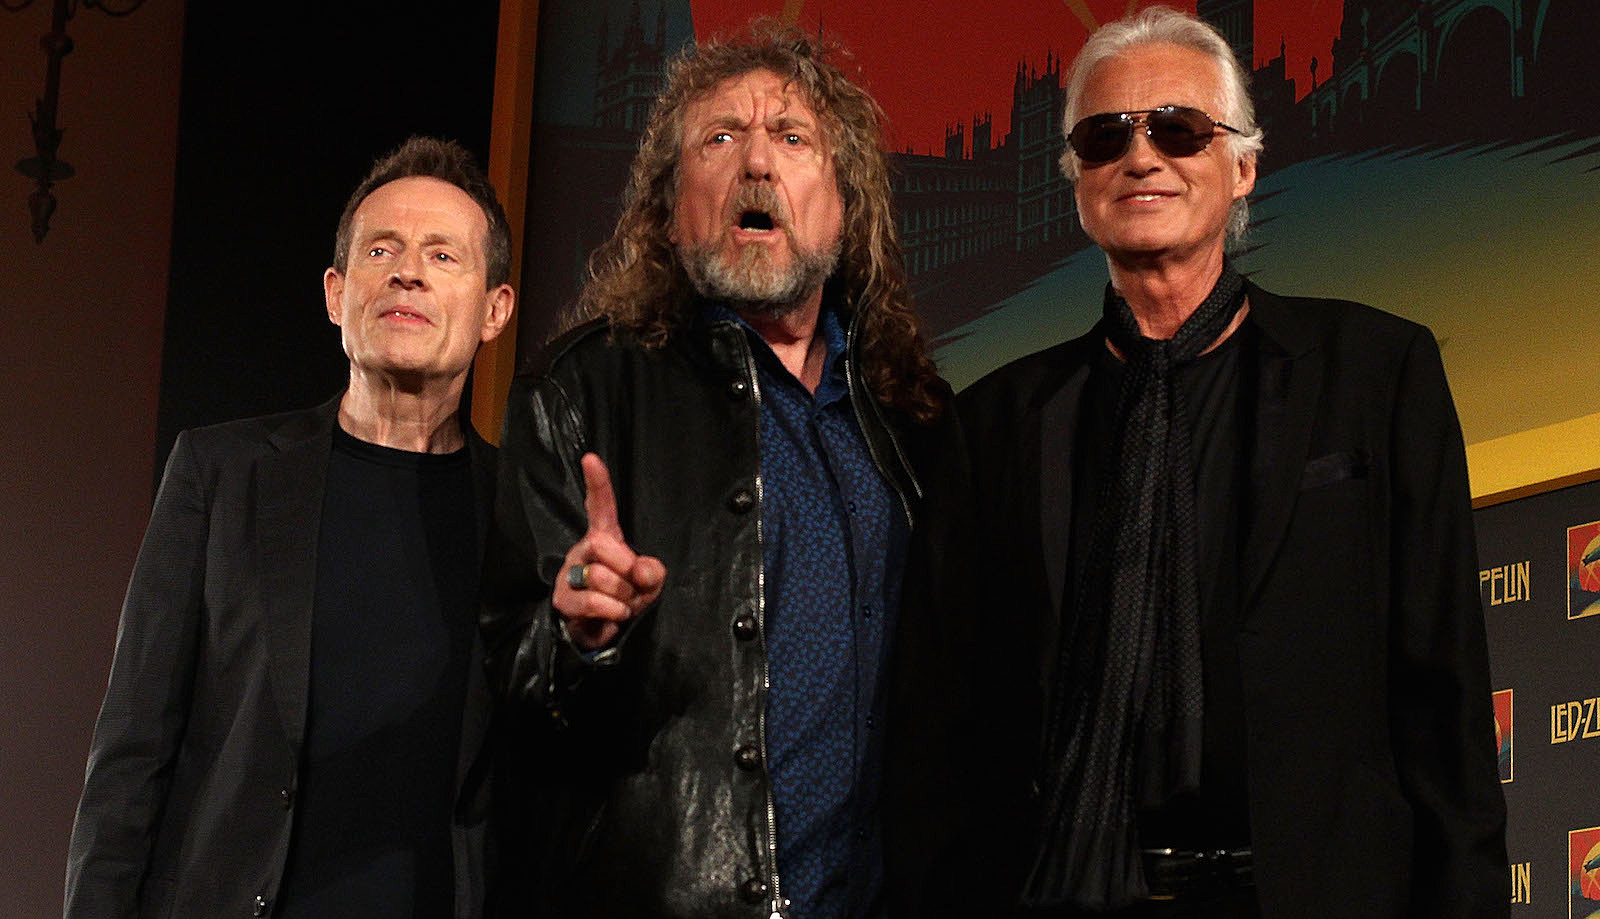 Led Zeppelin Share Previews of Upcoming Book